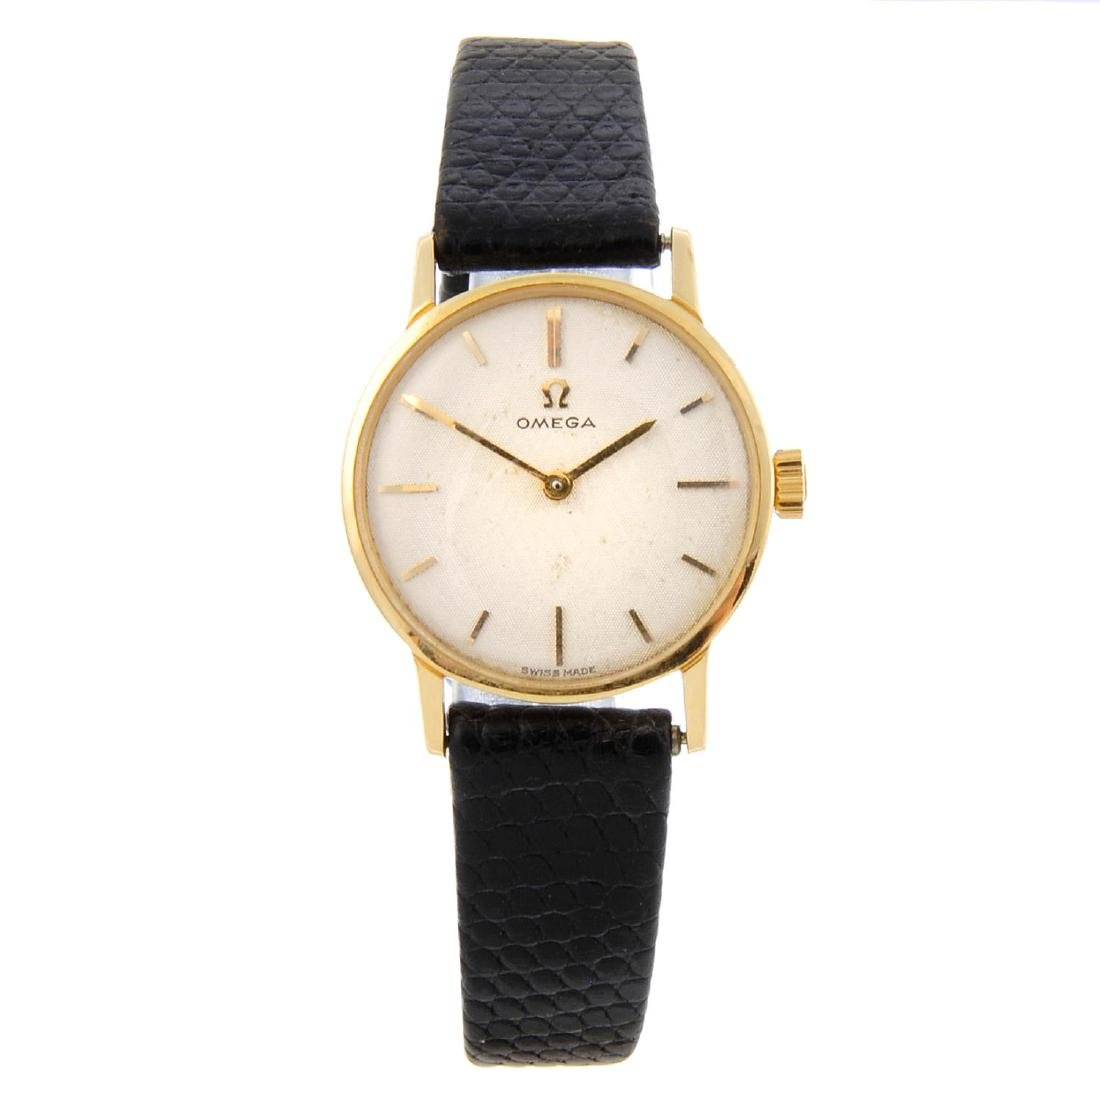 OMEGA - a lady's wrist watch. 18ct yellow gold case,